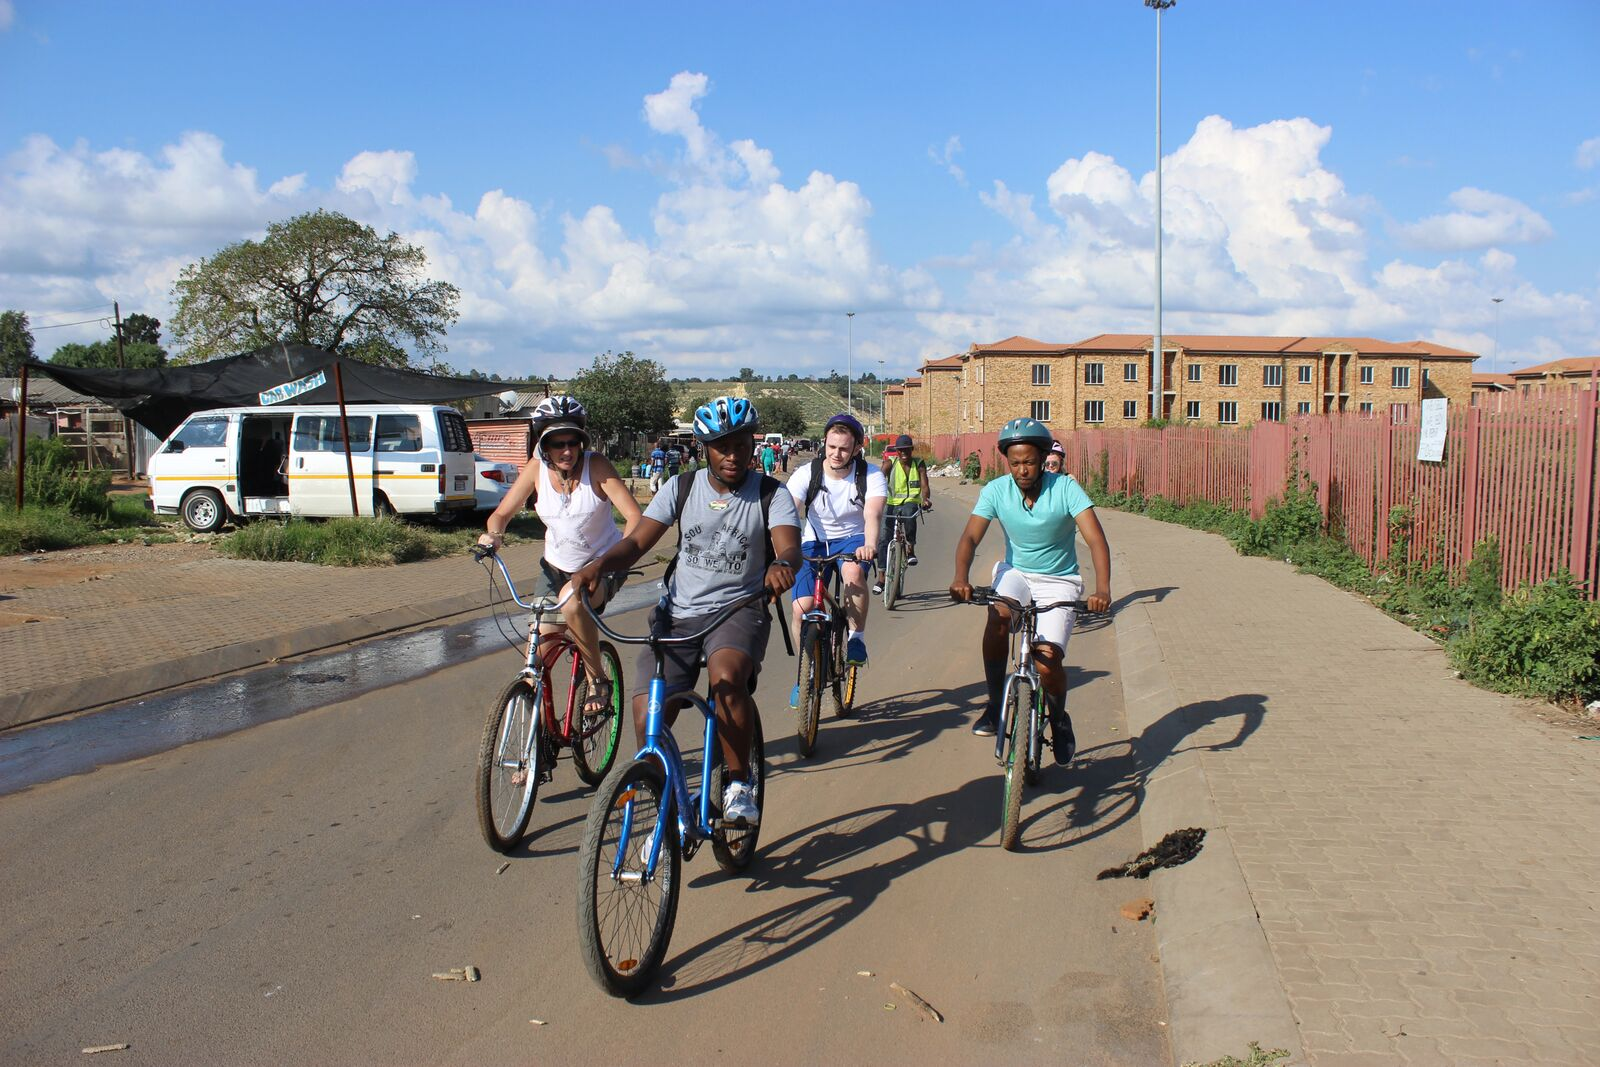 Lebo's Soweto Backpackers and Cycle Tours